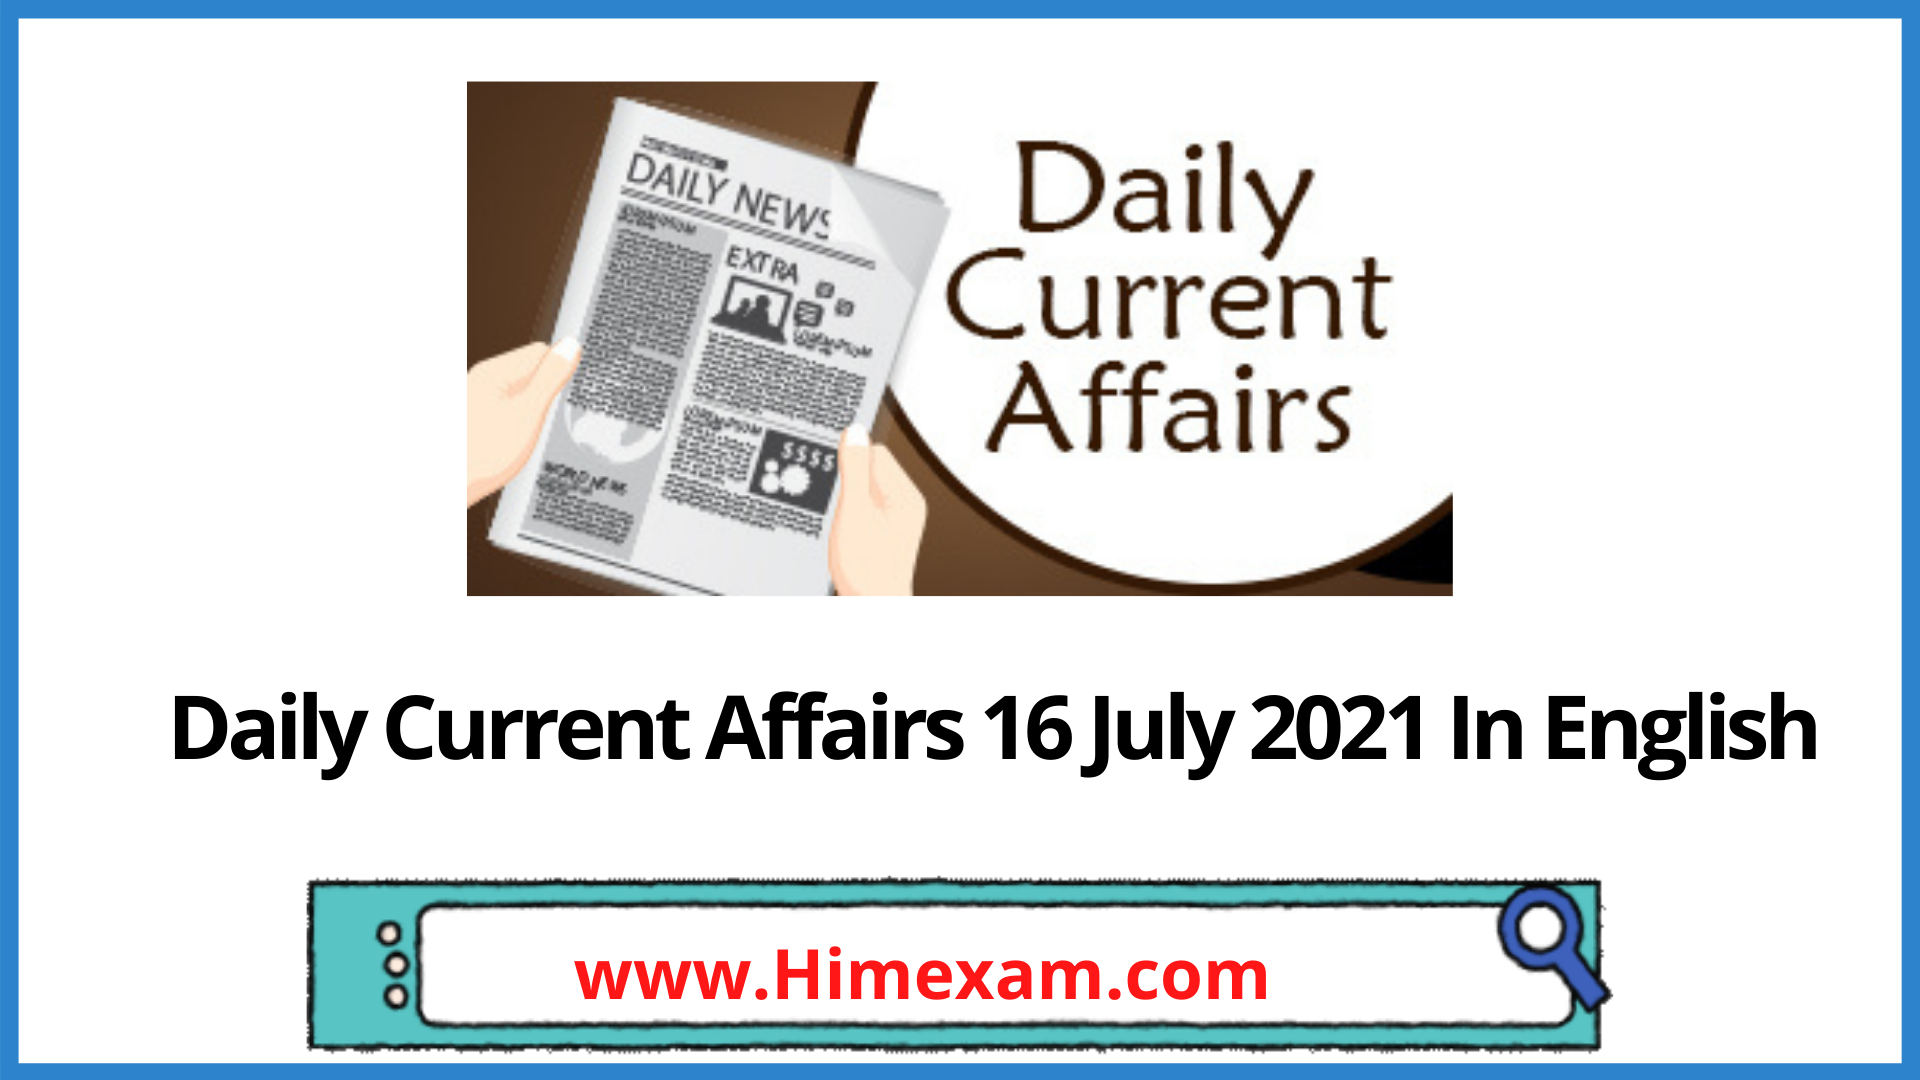 Daily Current Affairs 16 July 2021 In English